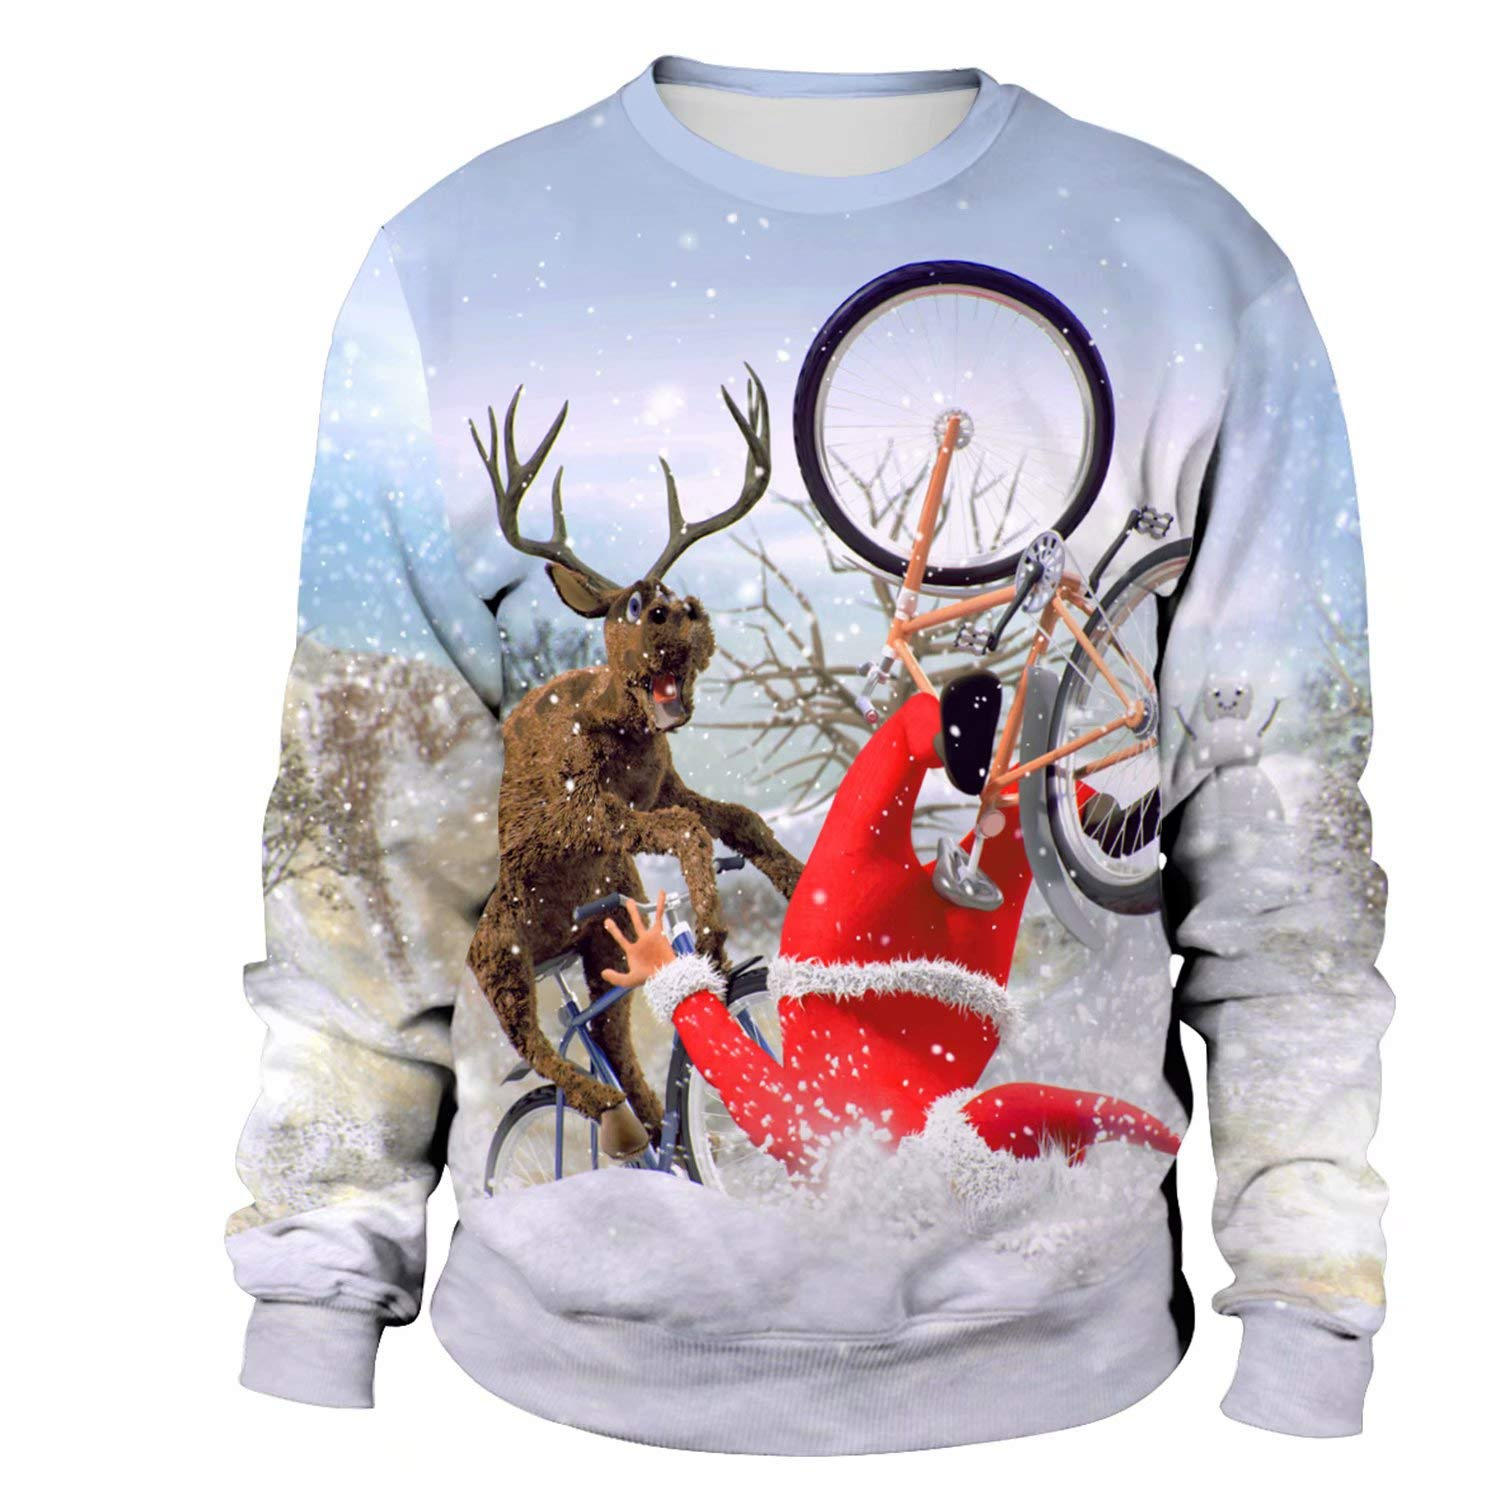 Unisex Ugly Christmas Novelty Sweater 3D Print Design Sweatshirt Men Women Novelty Sweater 3D Print Design Funny Xmas Pullover Crewneck//Hoodie